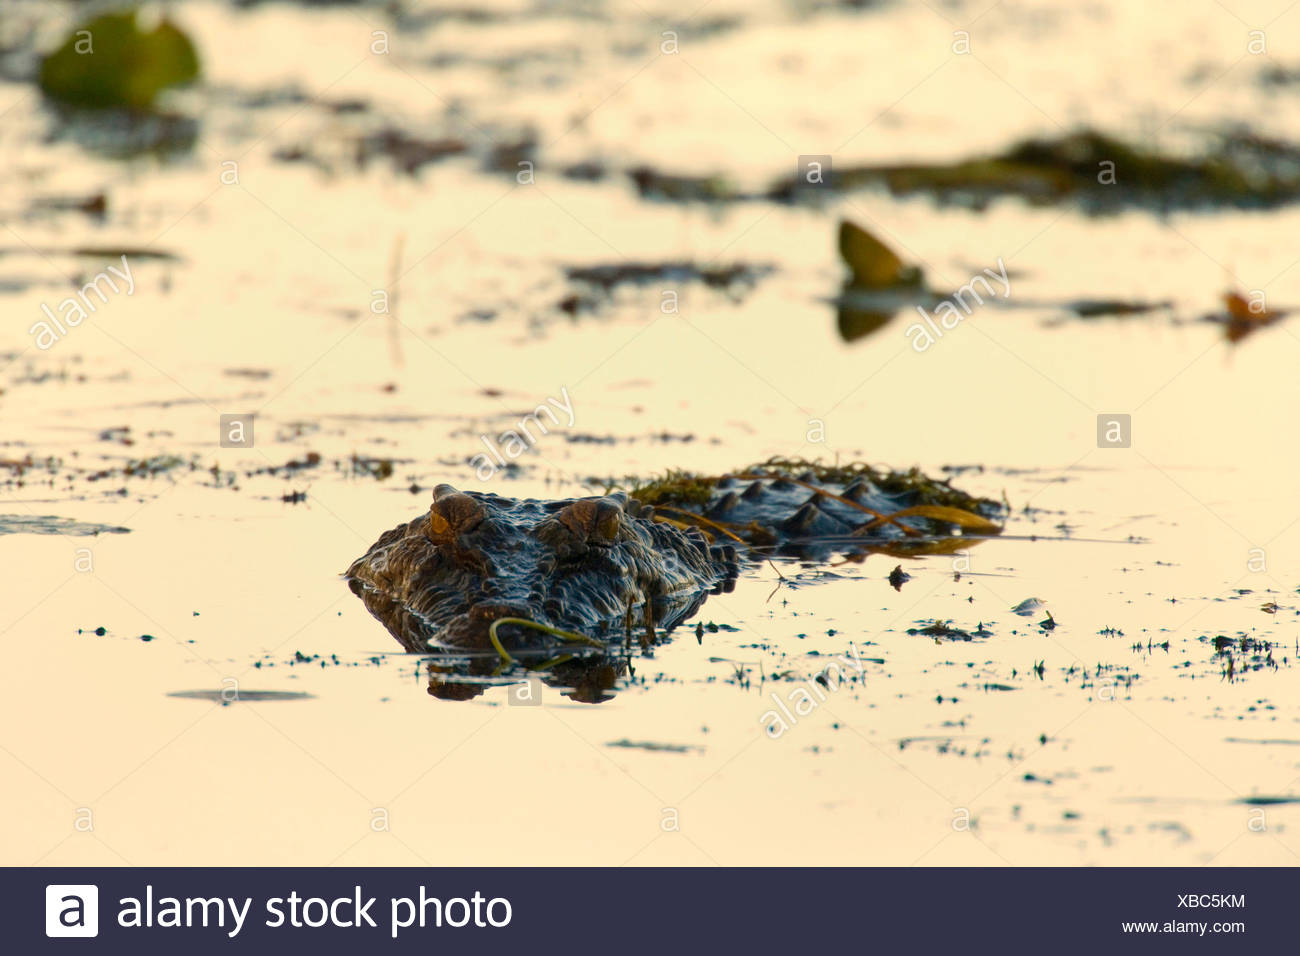 saltwater crocodile, estuarine crocodile (Crocodylus porosus), big Saltwater Crocodile lying in wait for prey in a billabong in a swamp. Only the eyes and part of its snout are visivle while the rest is under water, Australia, Northern Territory - Stock Image